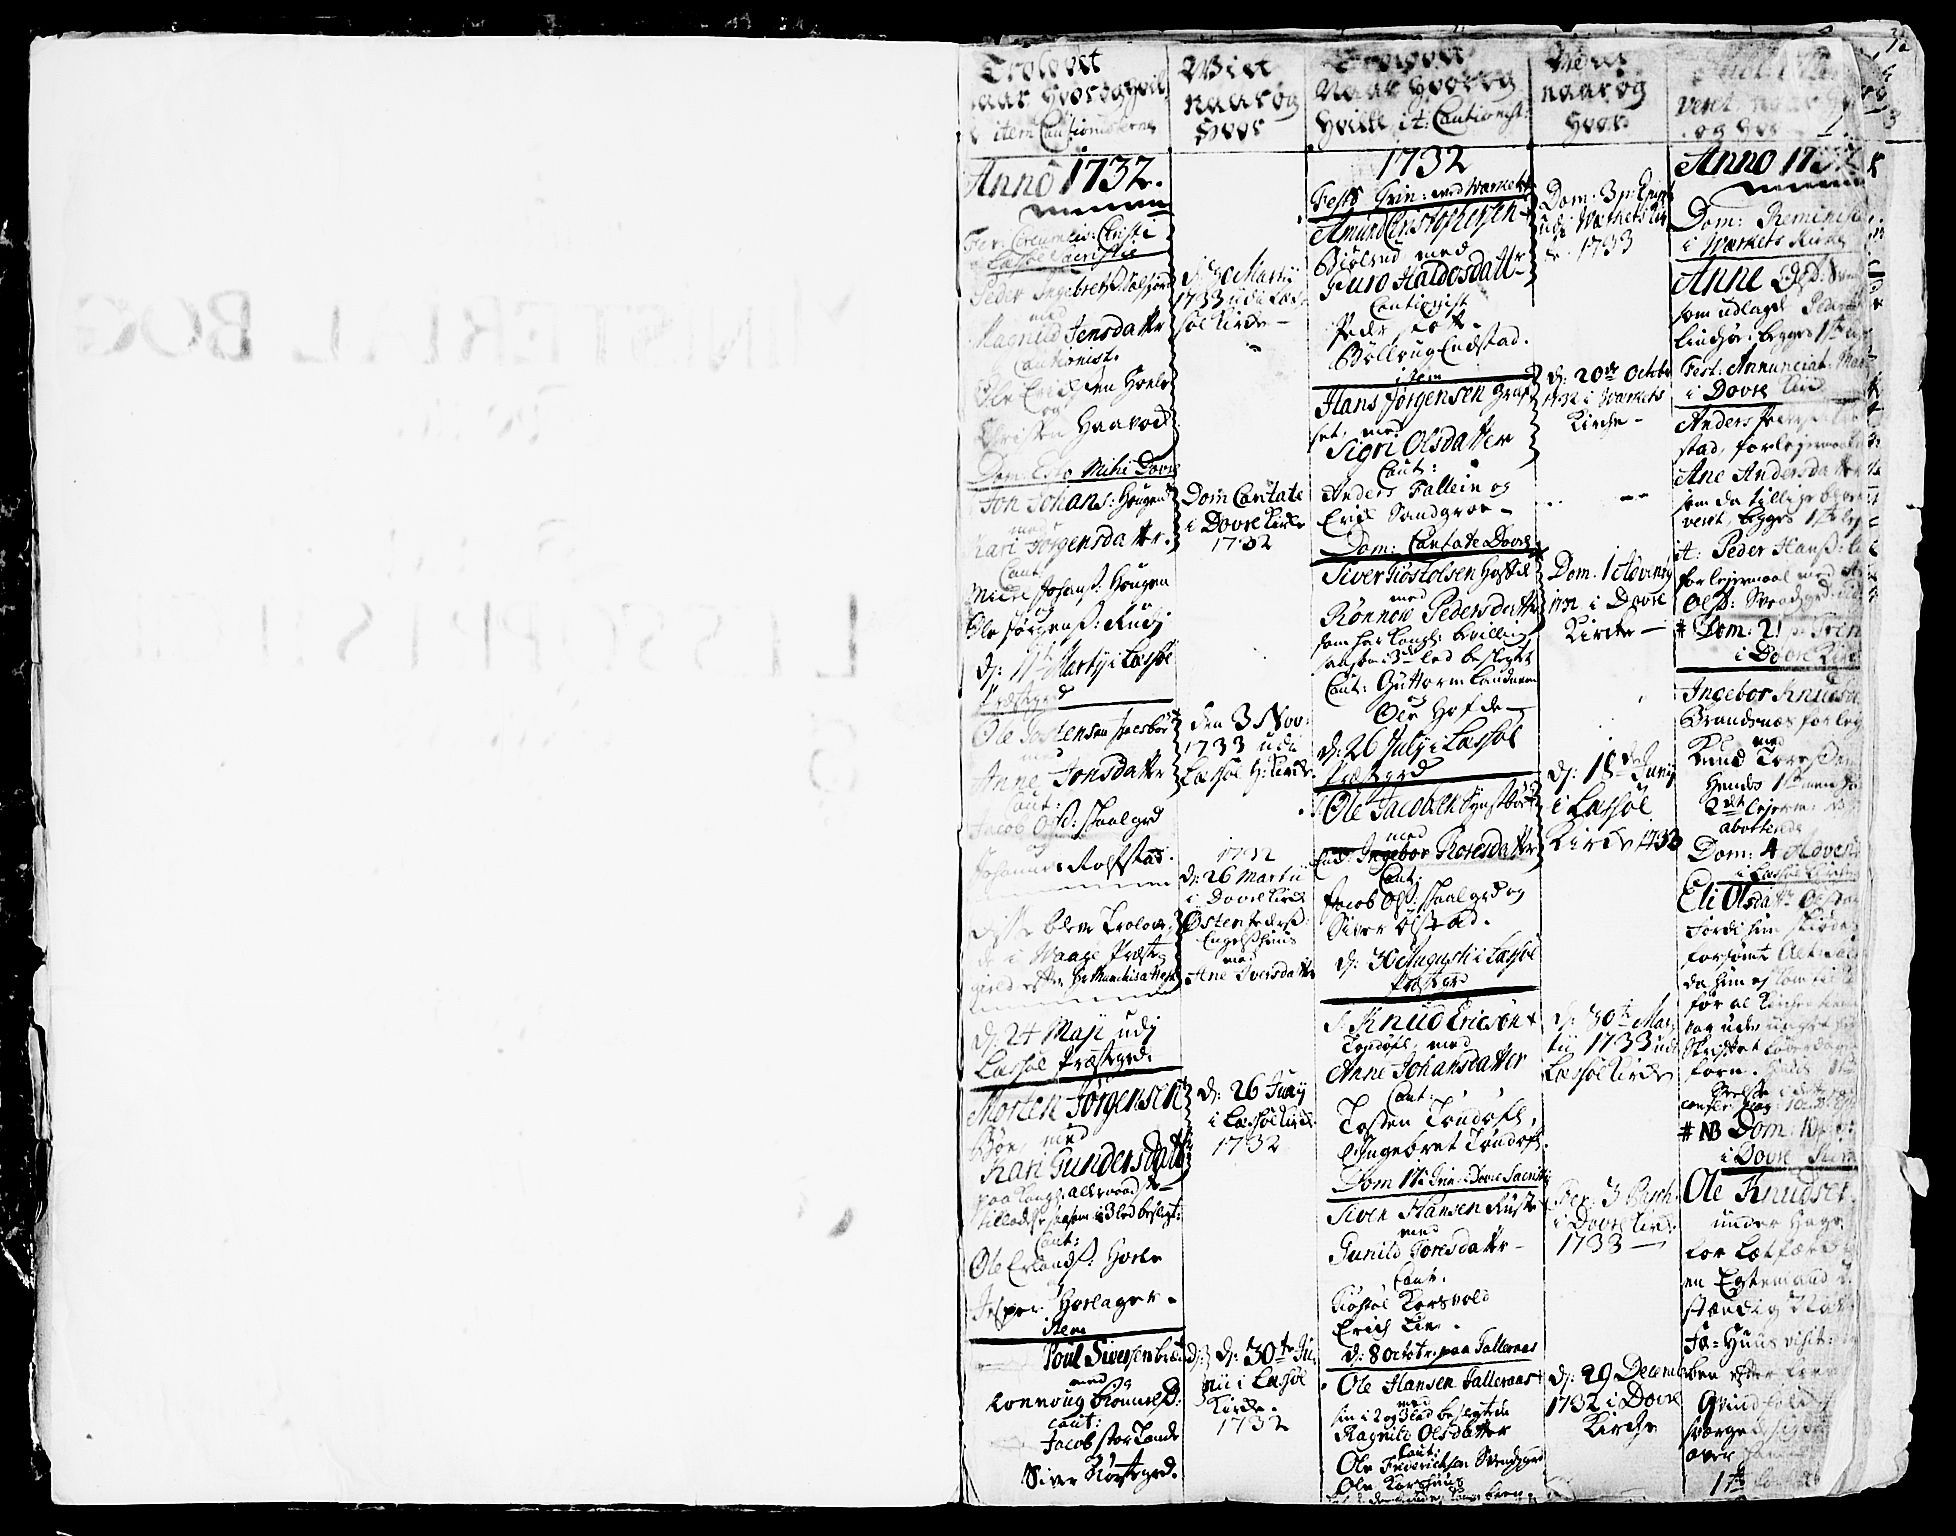 SAH, Lesja prestekontor, Parish register (official) no. 2, 1732-1776, p. 0-1